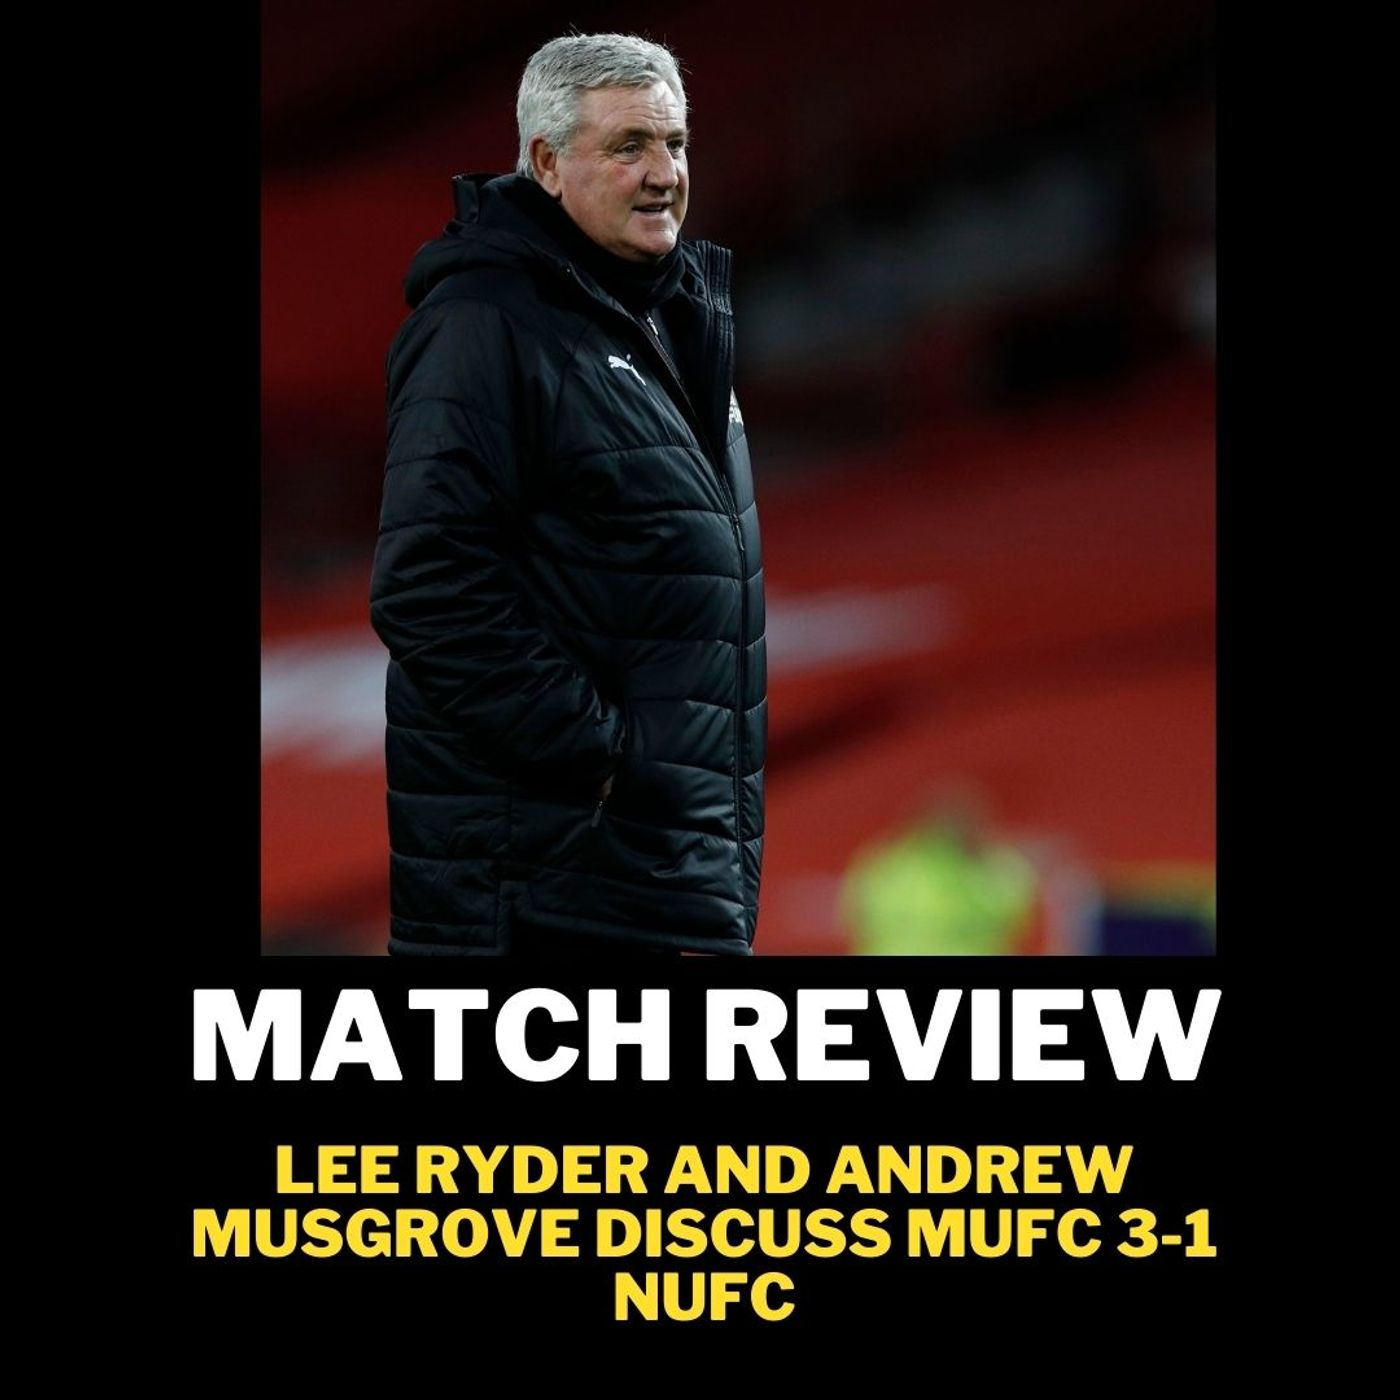 'It looks like he feel he's made a mistake coming to NUFC' - Lee Ryder's explosive review of MUFC 3-1 NUFC